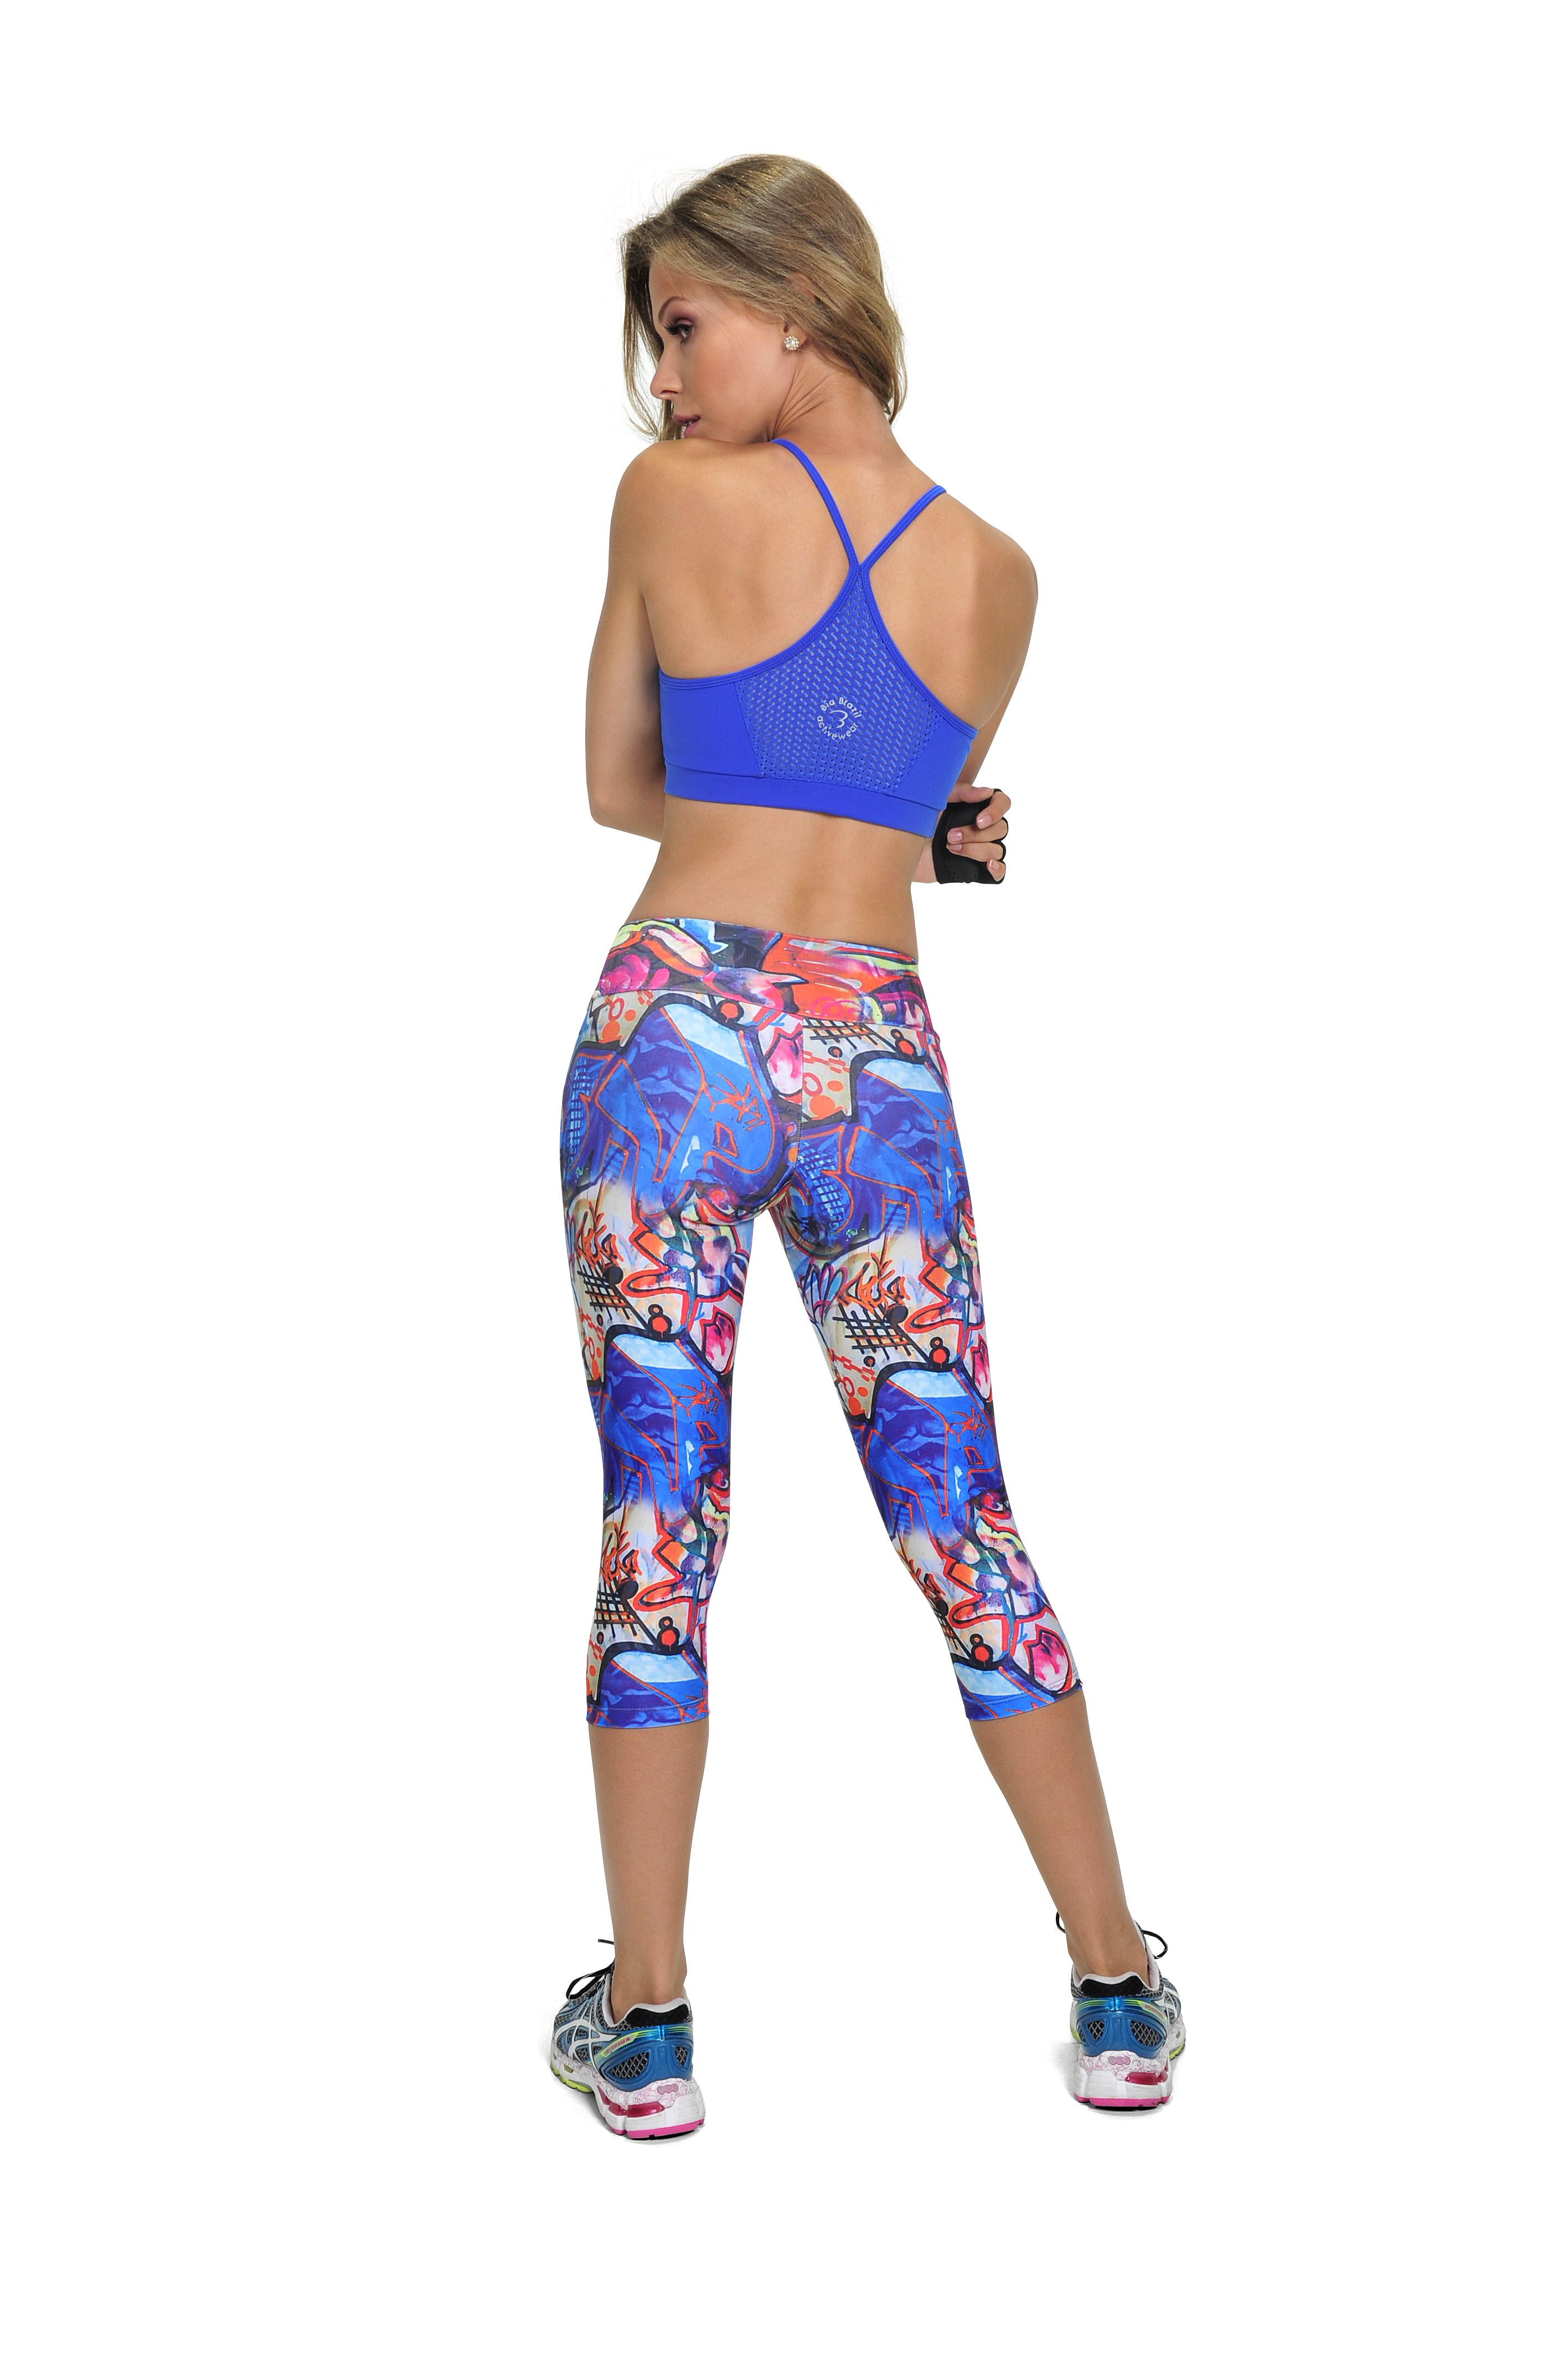 e9792c8d70da65 Bia Brazil - NEW Cute Workout Clothes by BEST FIT BY BRAZIL  www.bestfitbybrazil.com - yoga pants, sexy leggings, women workout clothes, sexy  fitness wear, ...